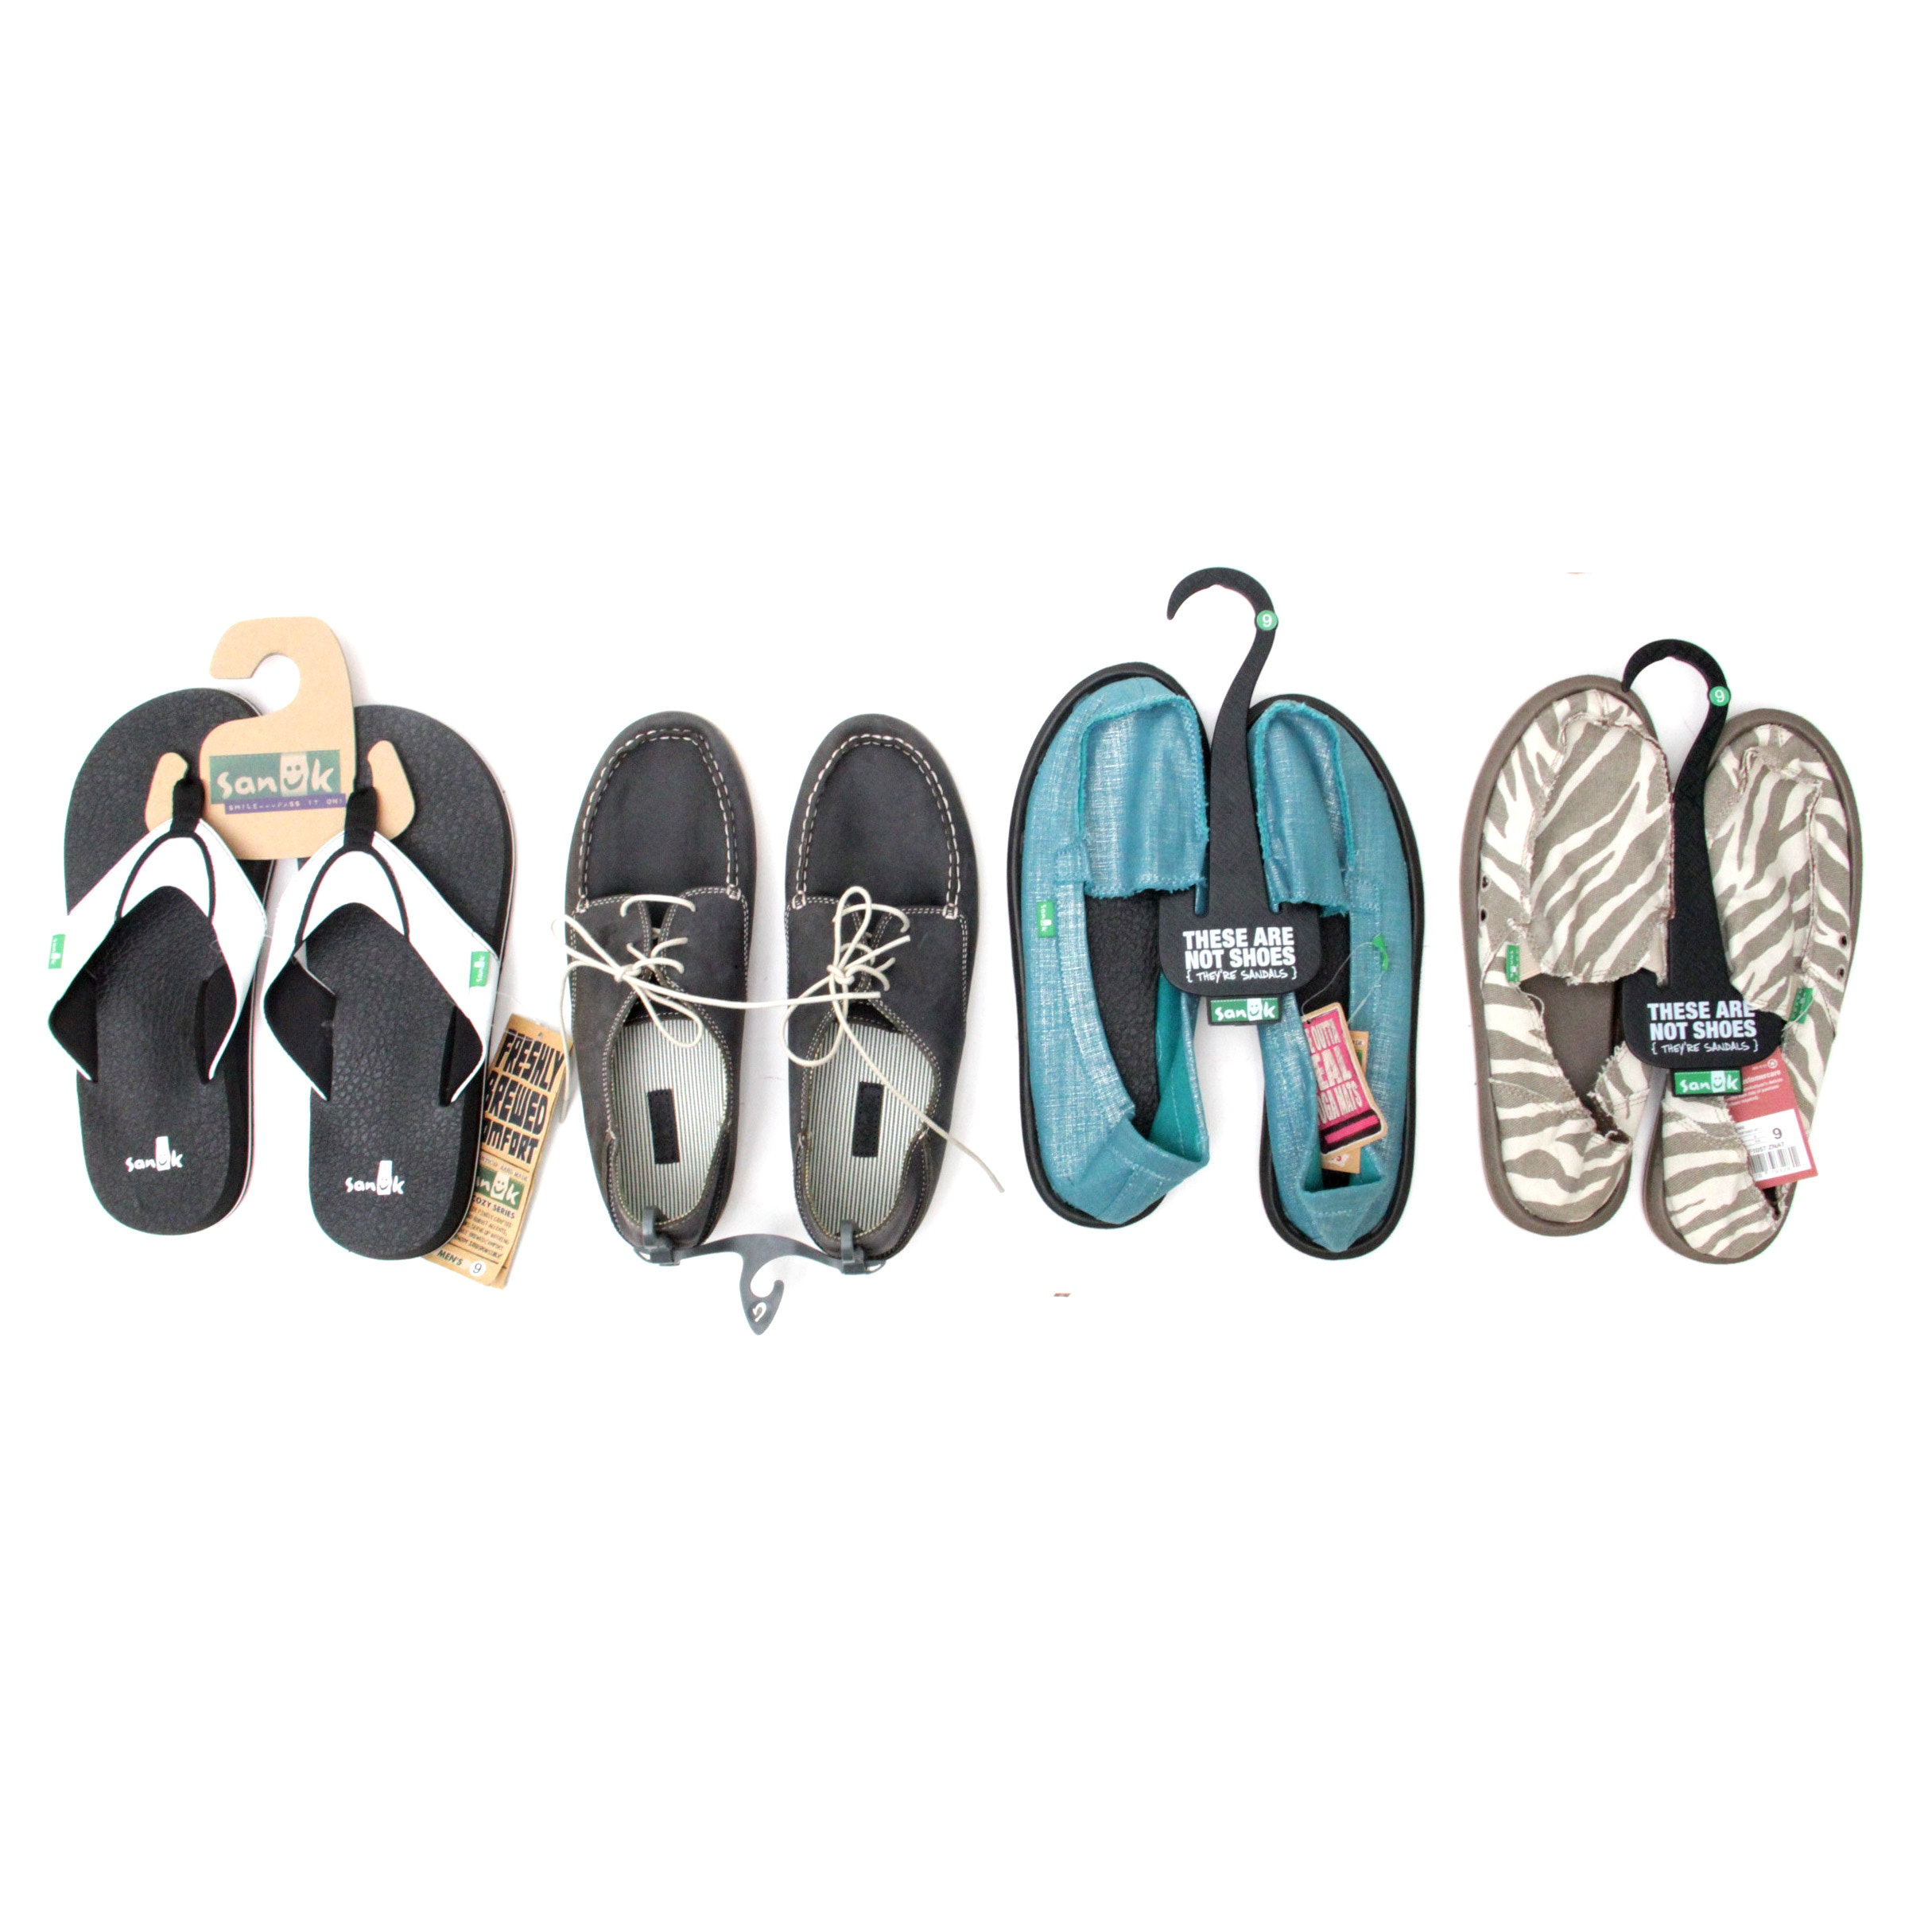 Collection of Size 9 Sandals to Sanuk and Olukai